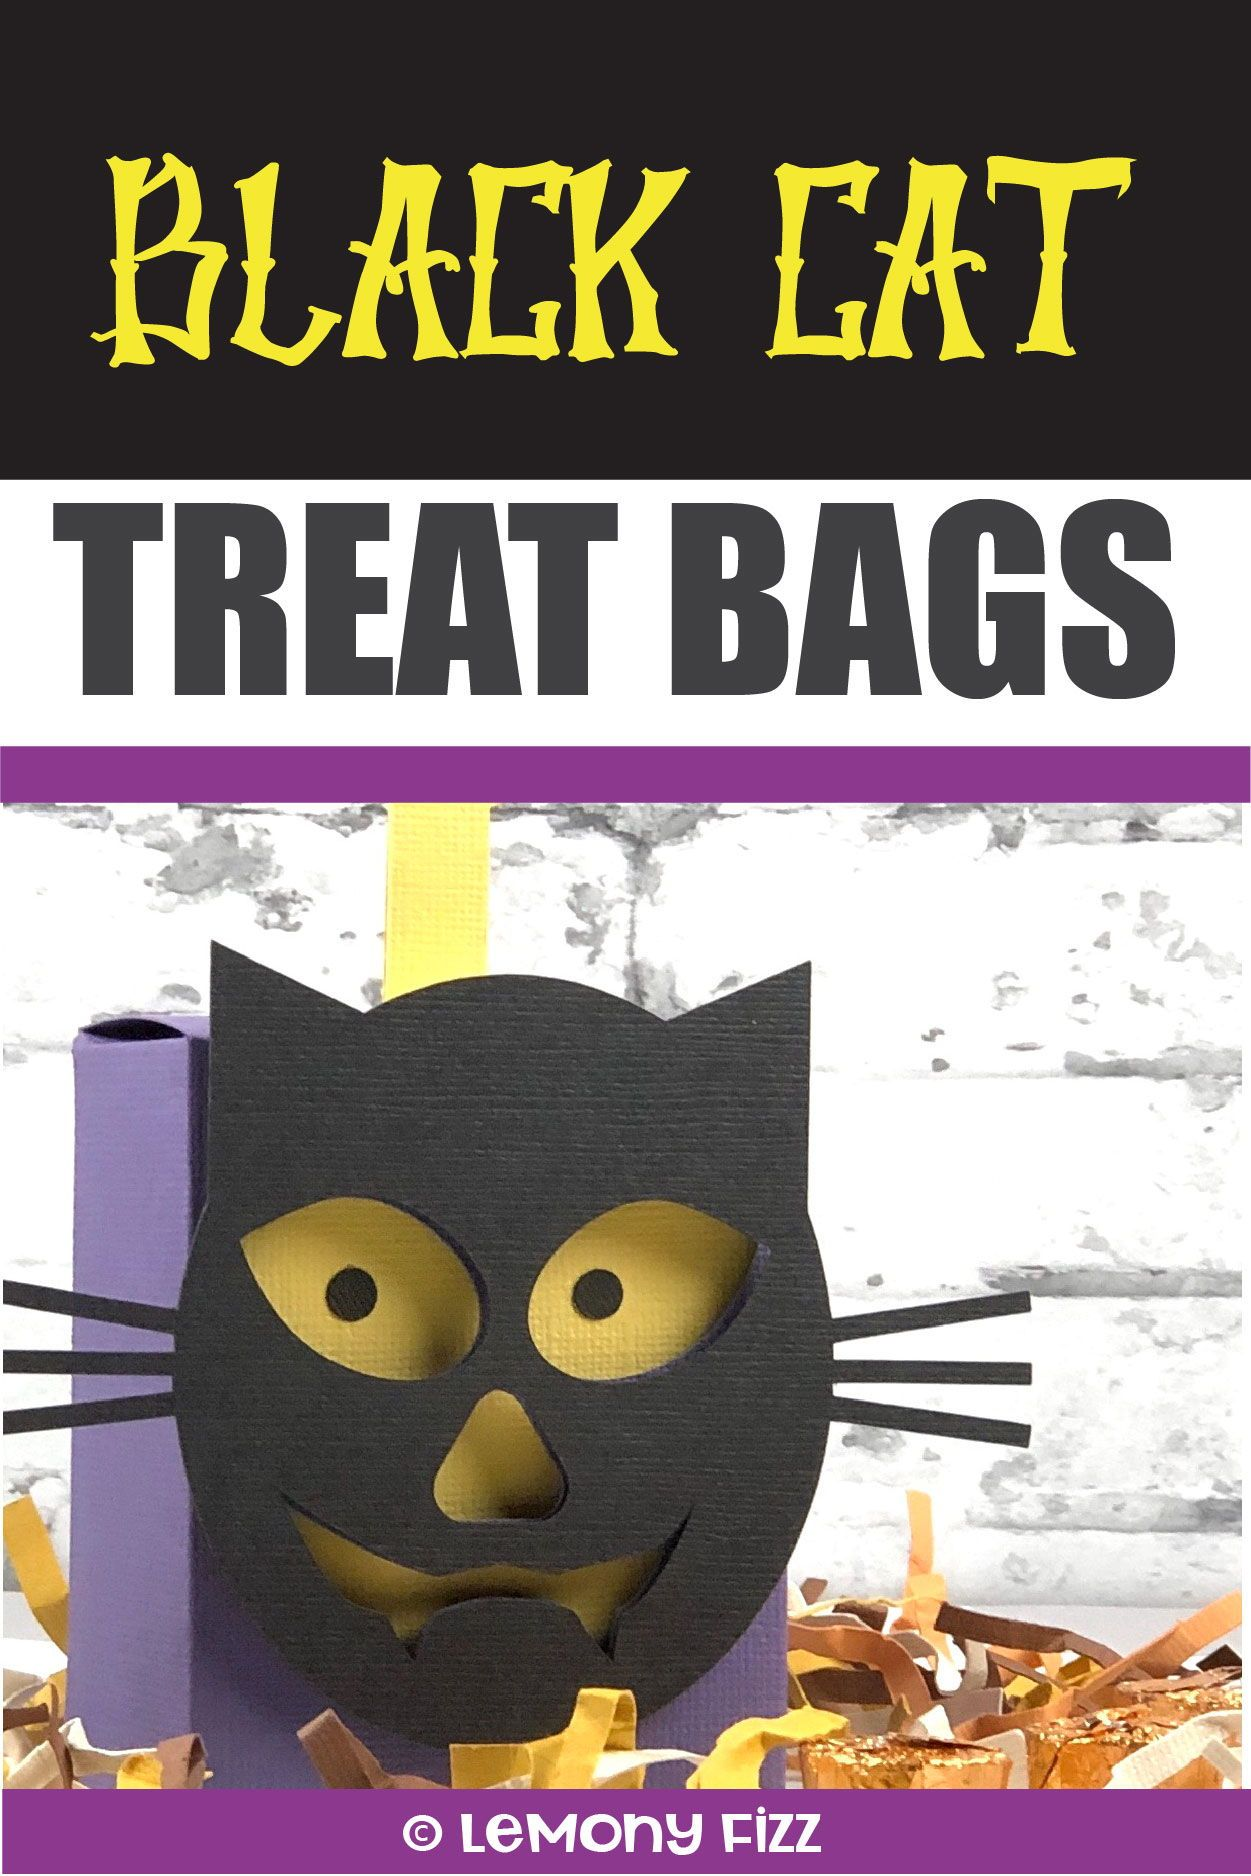 19+ Creepy halloween crafts for adults ideas